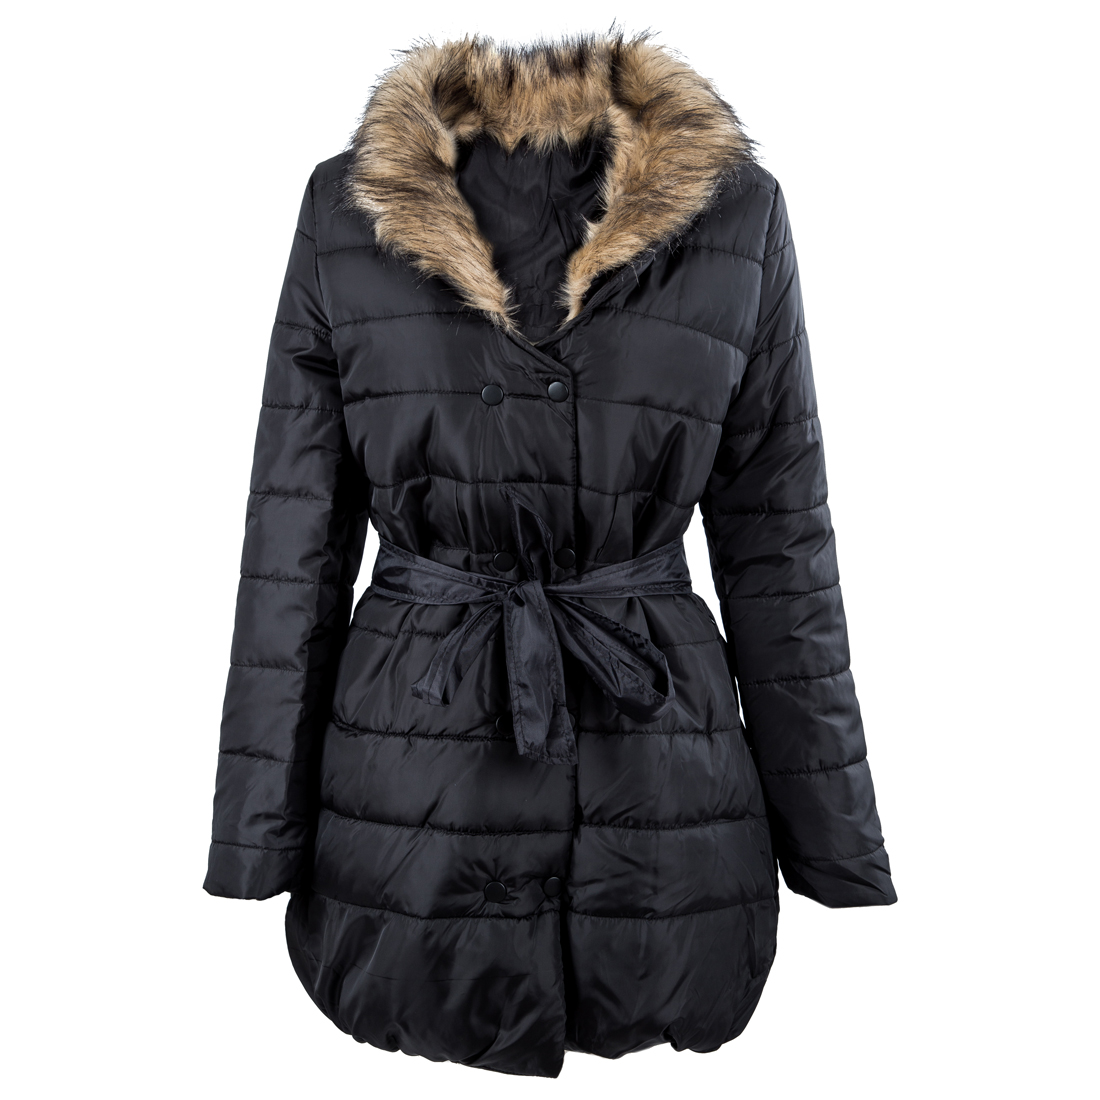 Womens Long down cotton trench coat double Breasted padded jacket belt fur - Black M